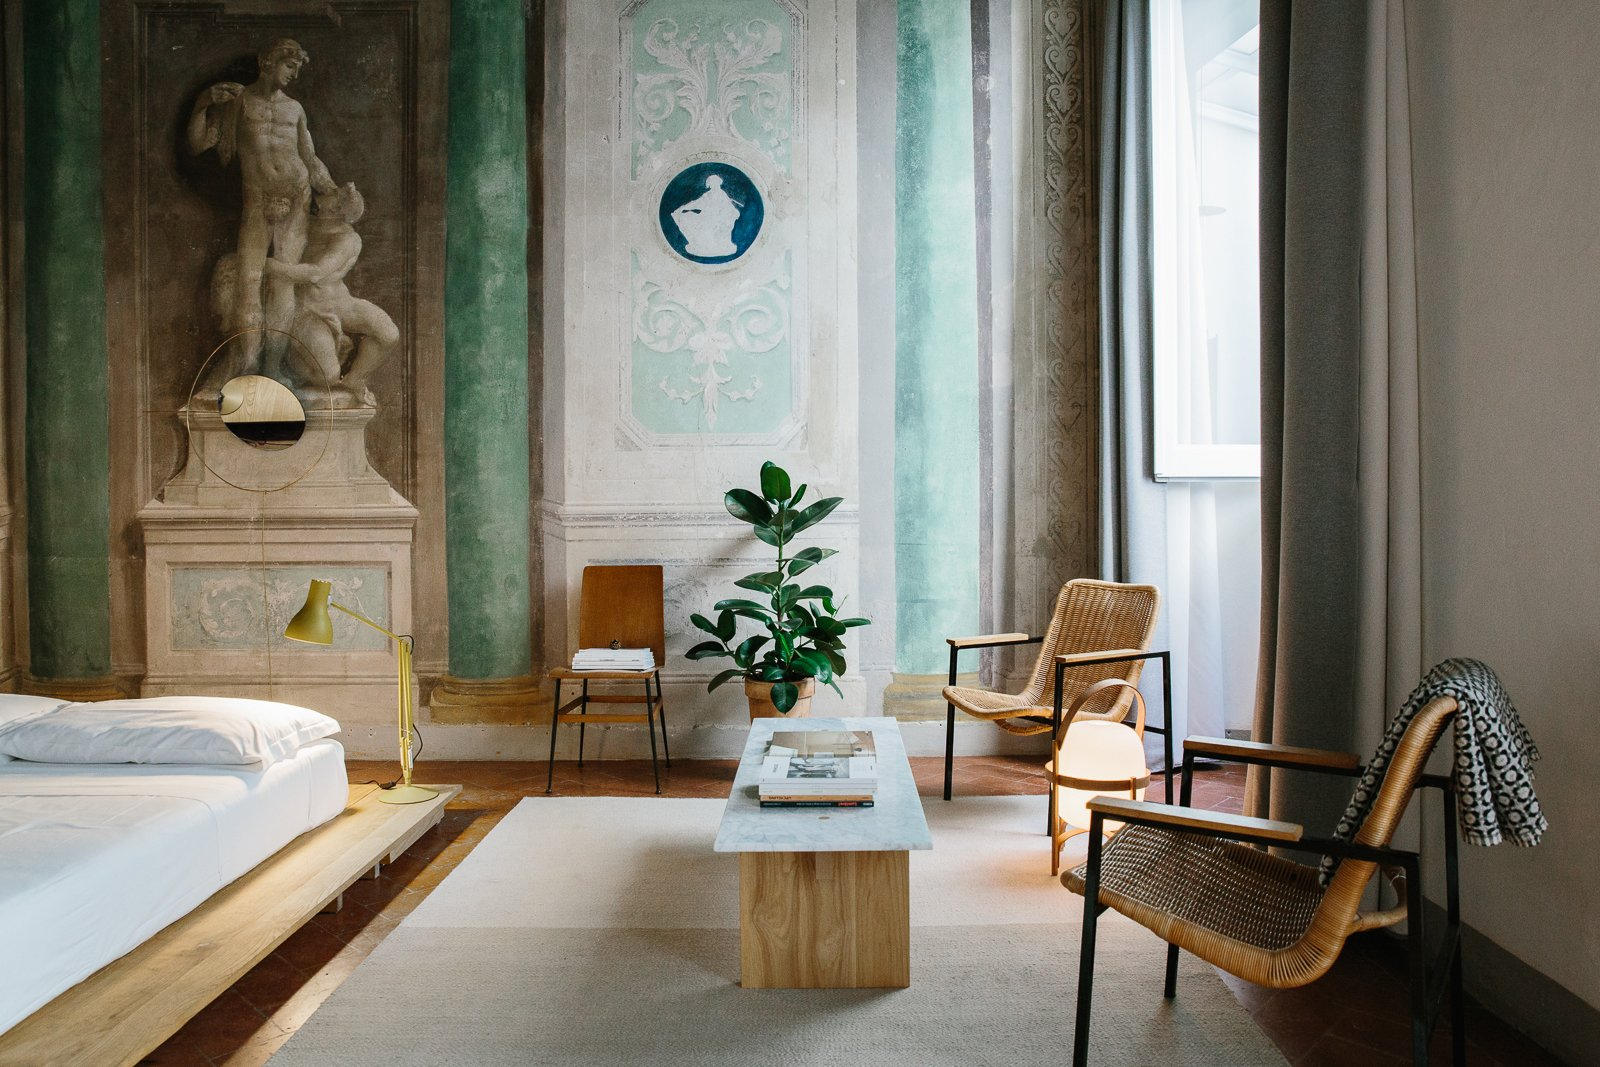 Bedroom, Floor Lighting, Table Lighting, Chair, Bed, Bench, Rug Floor, and Lamps  Best Photos from A 16th-Century Florentine Palazzo Is Transformed Into an Artist Residency